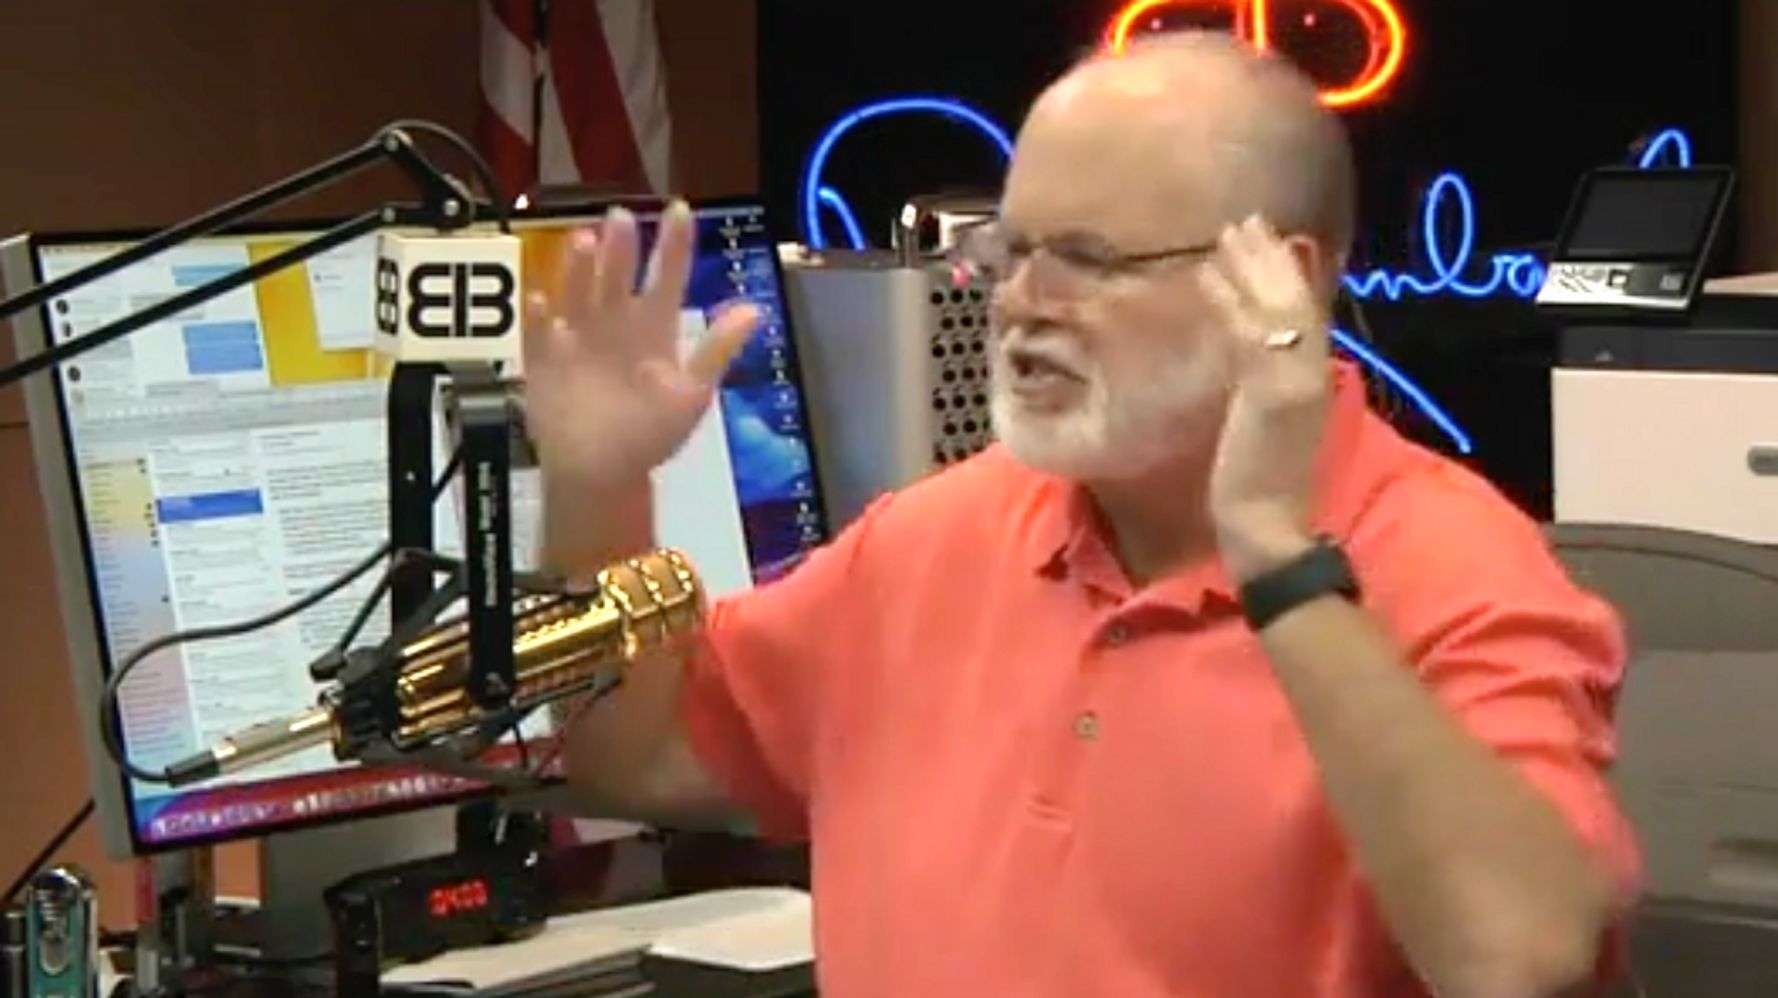 Rush Limbaugh Claims Health Experts Are Hillary Clinton Allies Trying To Hurt Trump